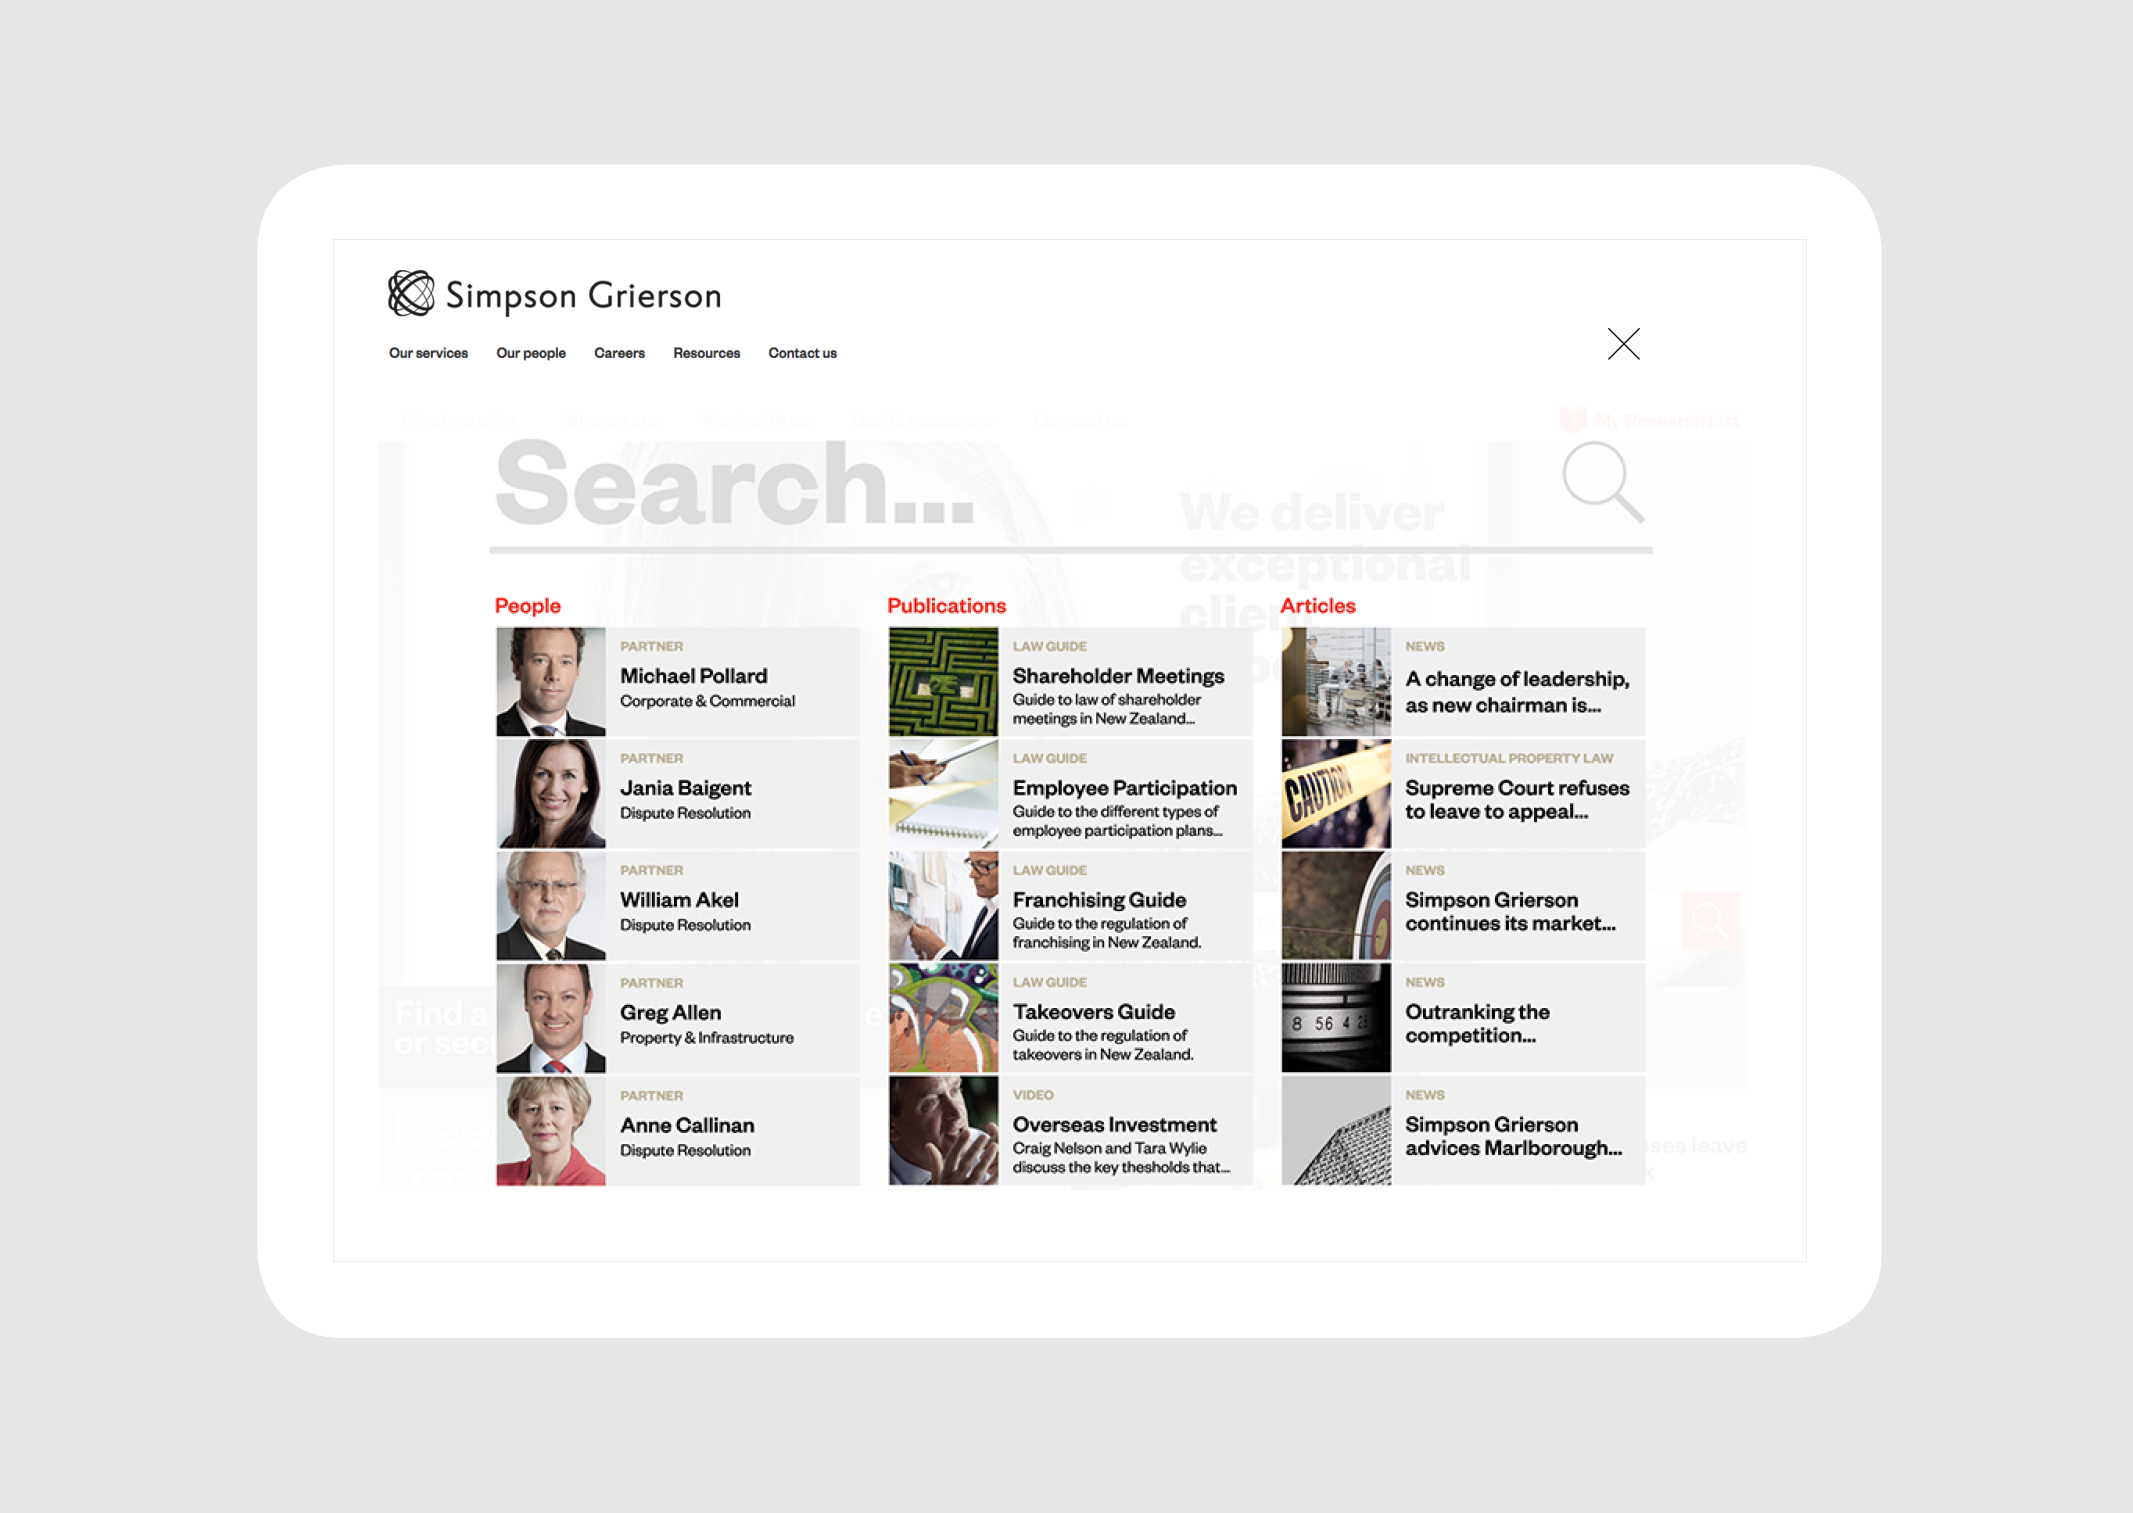 Simpson Grierson Website Search – featuring key search categories and thumbnail images